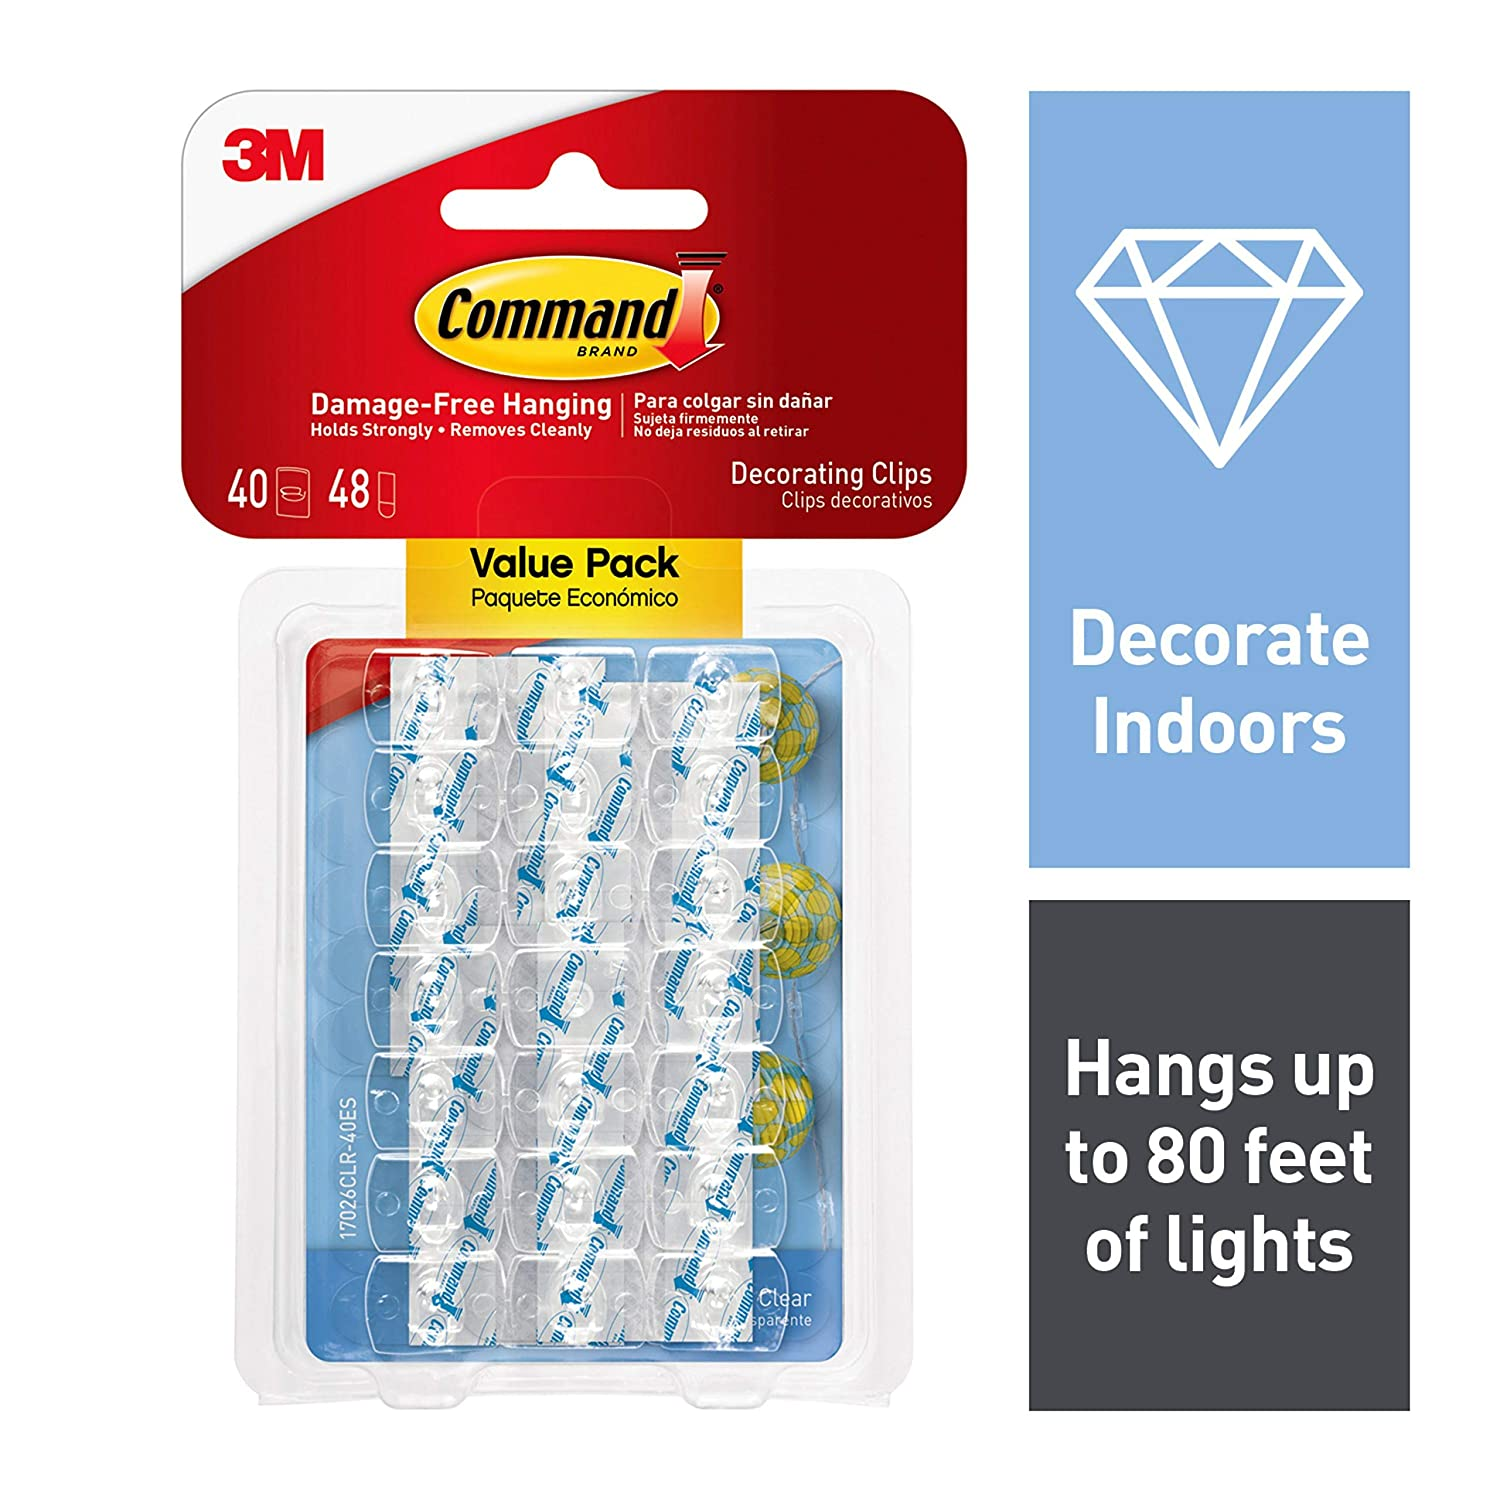 Command by 3M Dorm Light Clips, Clear, Great for Hanging String Lights, Hangs up to 80 feet of lights